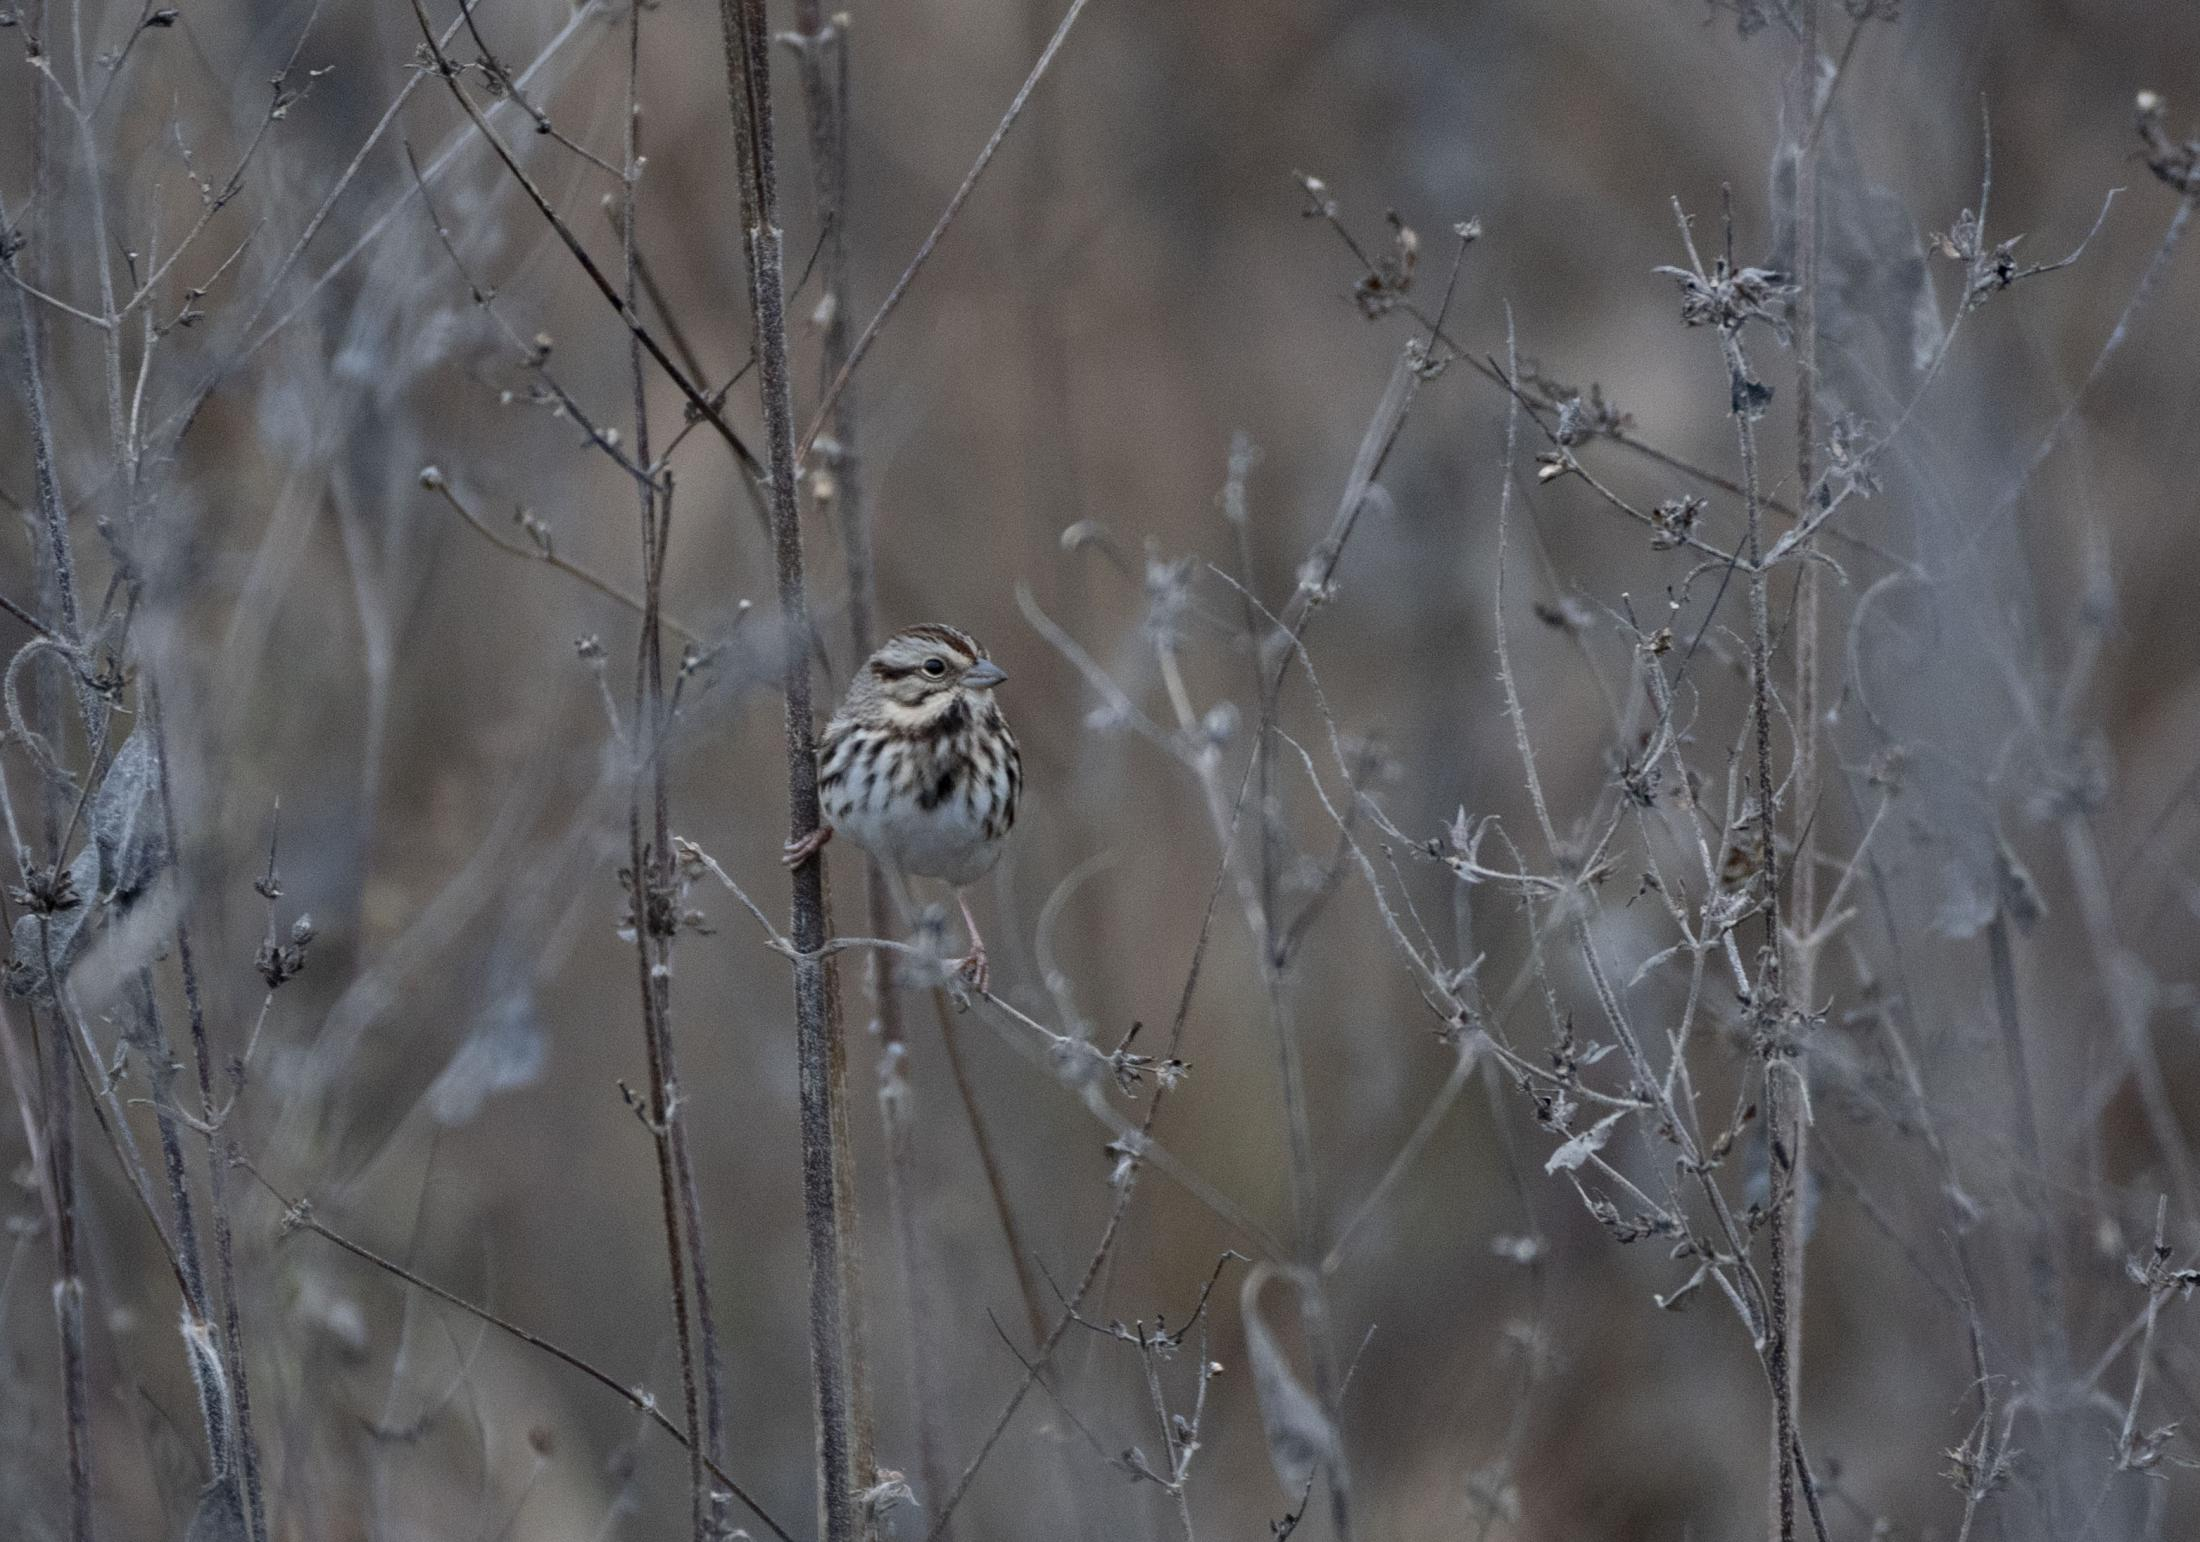 A Song Sparrow sits on a dead plant Oct. 25, 2020 at Eagle Bluffs Conservation Area in Columbia. Song Sparrows appear in Missouri in the winter and return to a similar area each year.